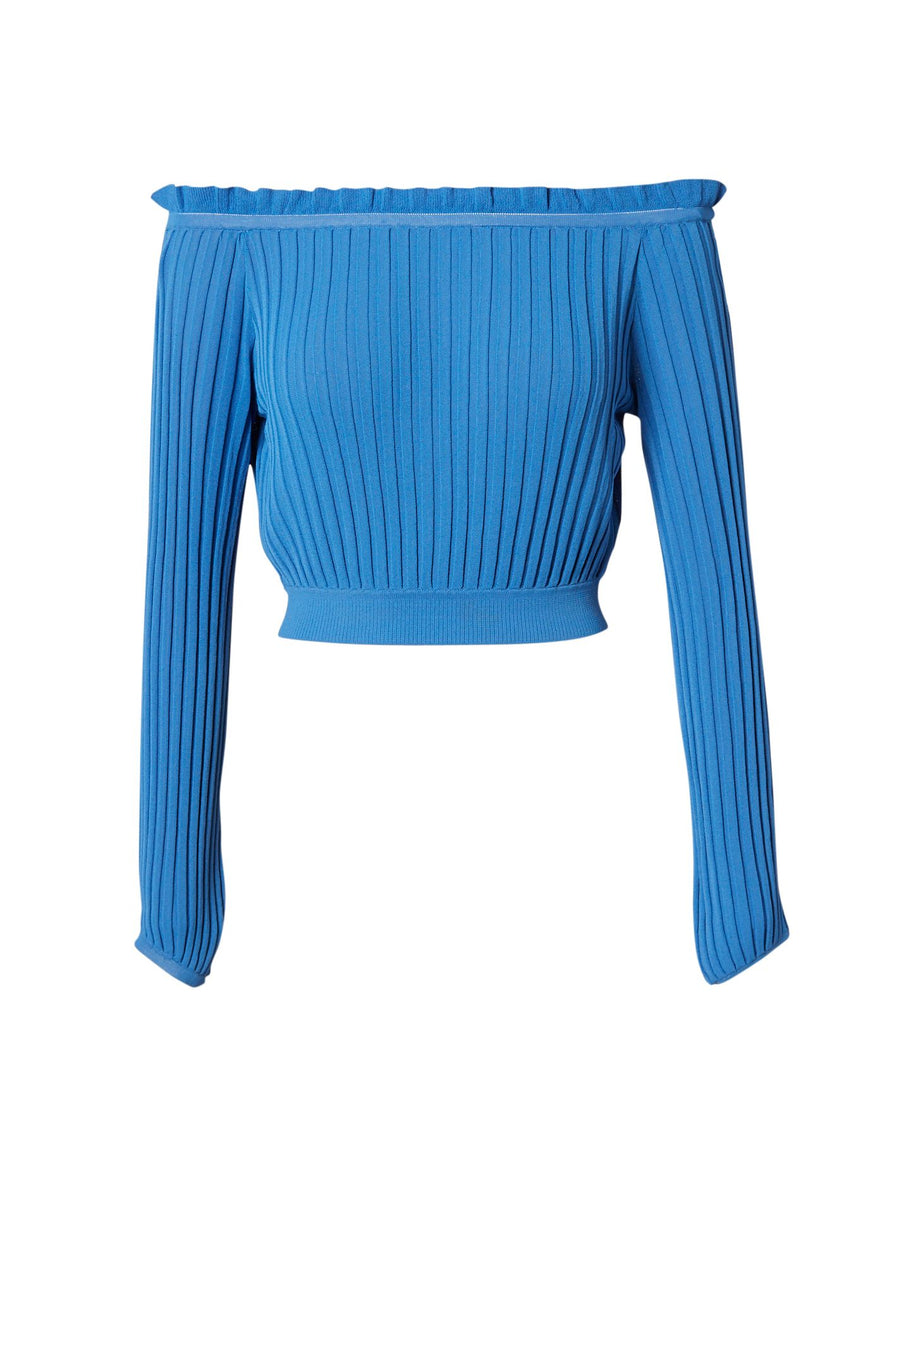 PLEATED RIB CROP TOP, OFF SHOULDER, CROPPED LONG SLEEVE STYLE, COLOR BLUE